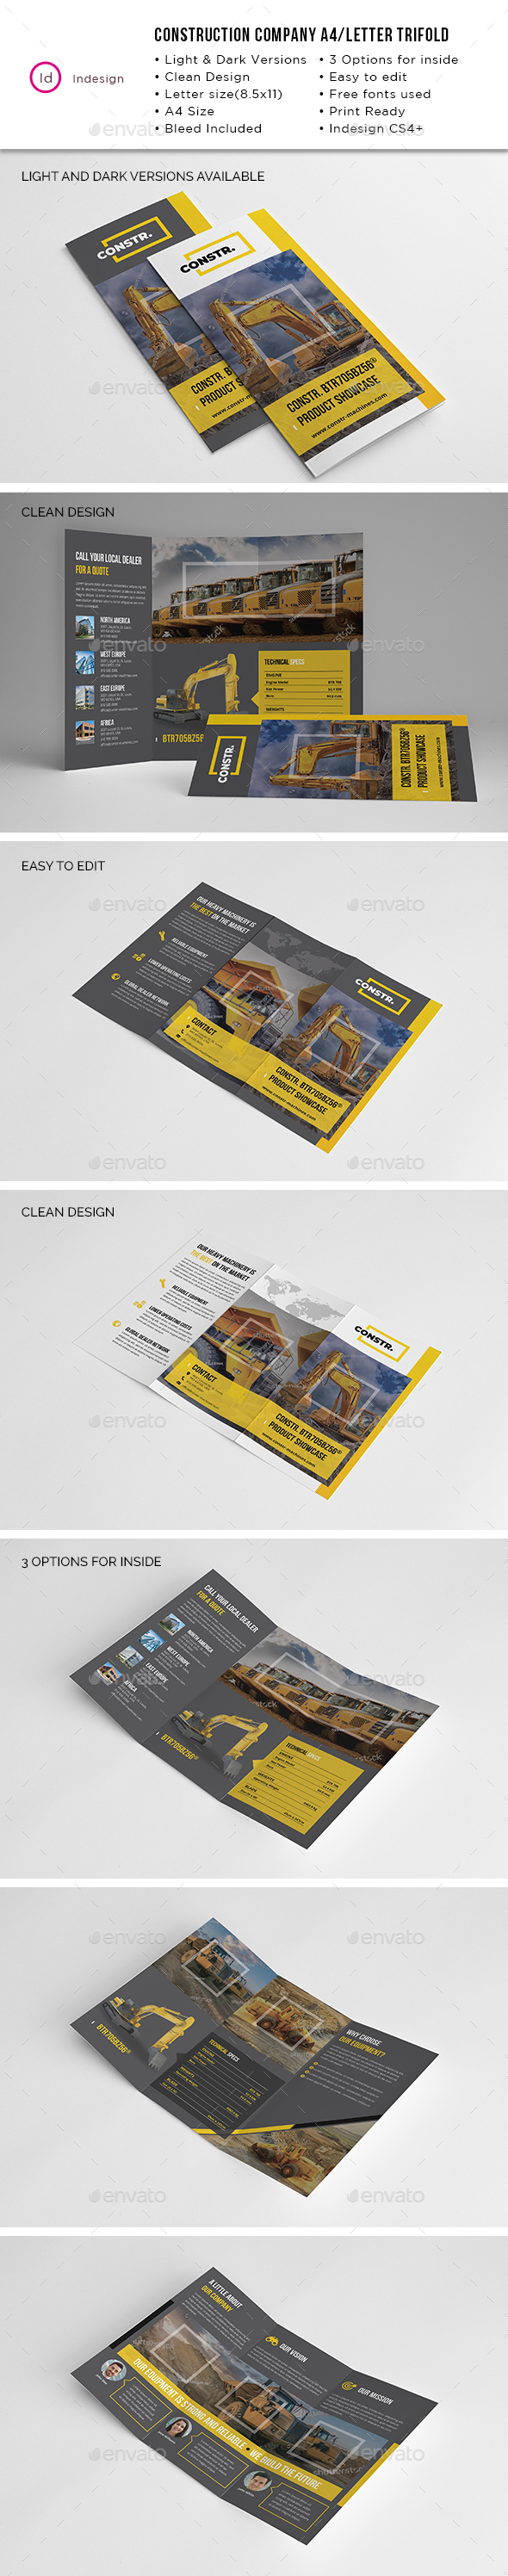 Construction Company A4/Letter Trifold - Industry Specific Business Cards